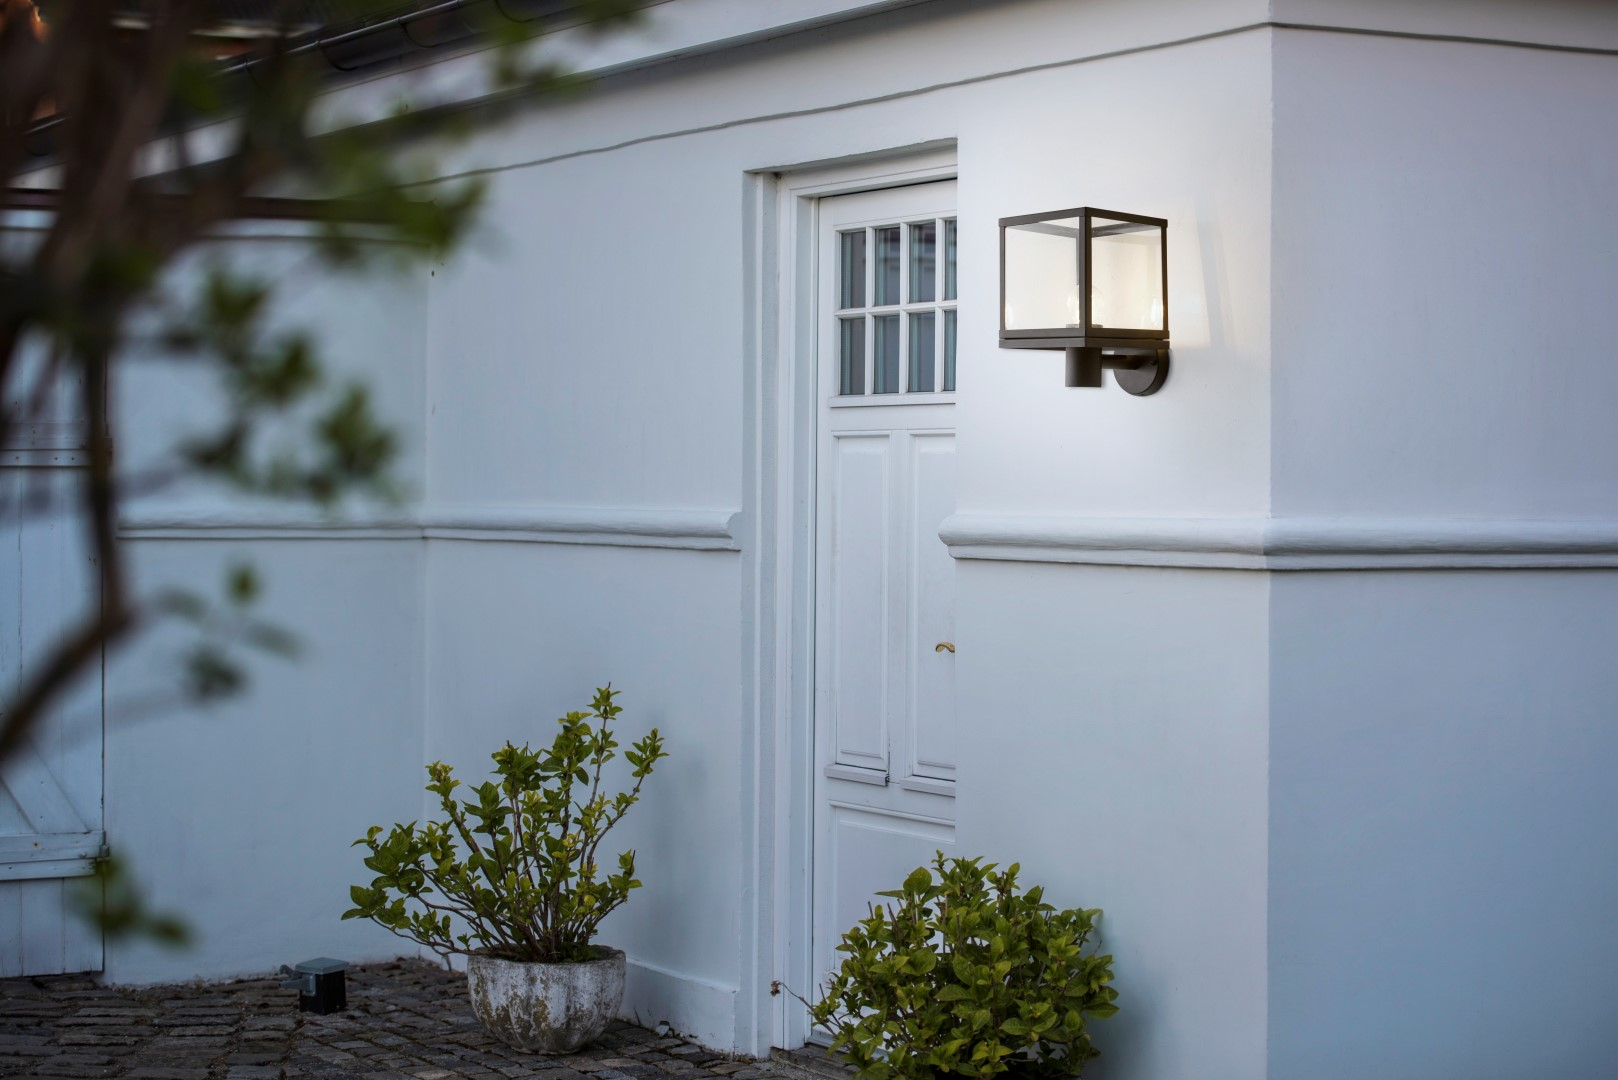 How Does Your Garden Glow? 12 Illuminating Outdoor Lighting Ideas